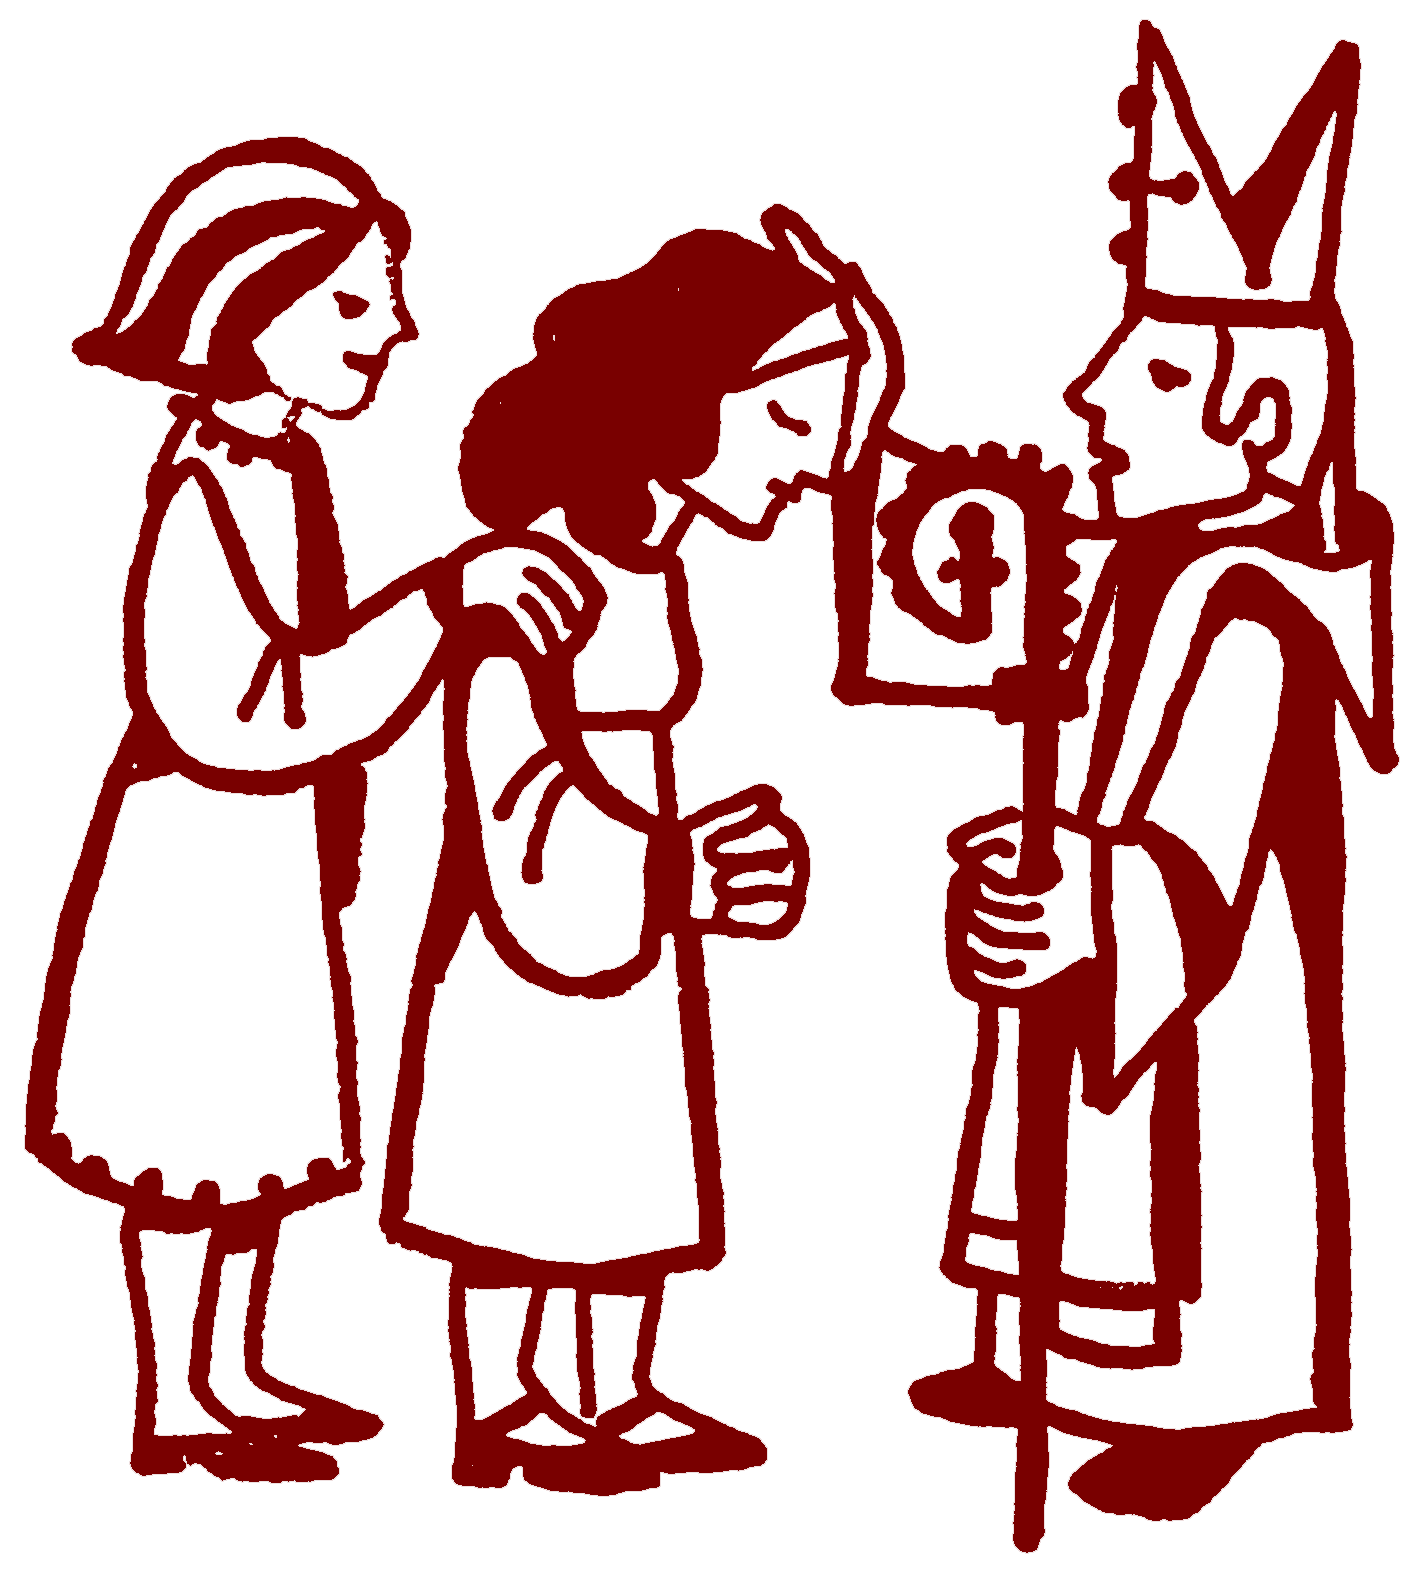 Confirmation clipart image black and white download Free Catholic Confirmation Cliparts, Download Free Clip Art, Free ... image black and white download